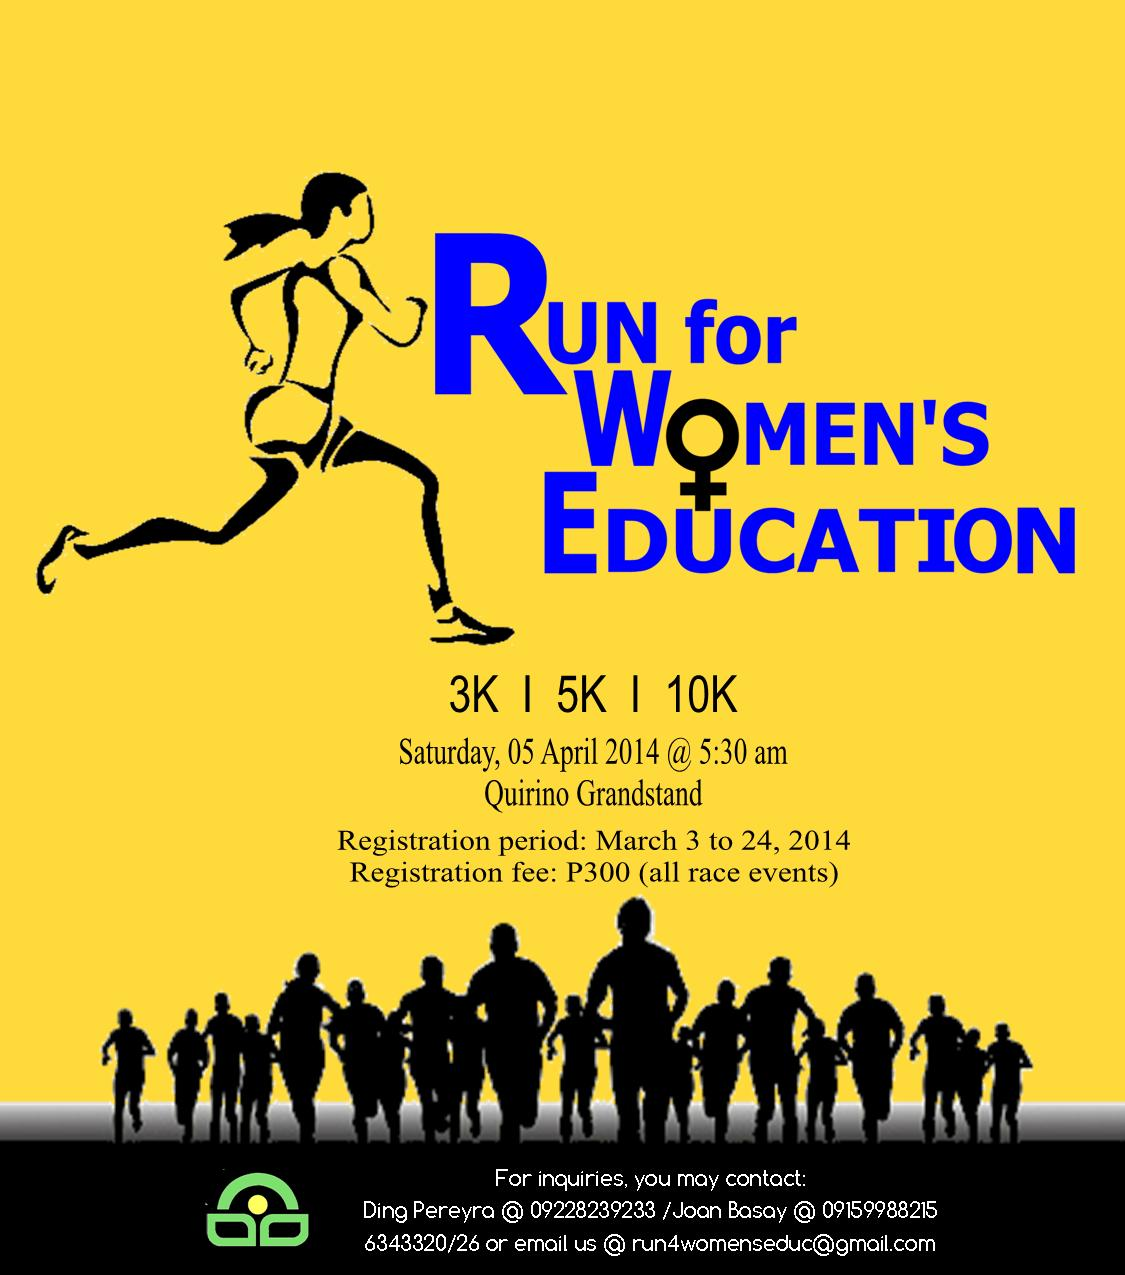 run-for-women's-education-2014-poster